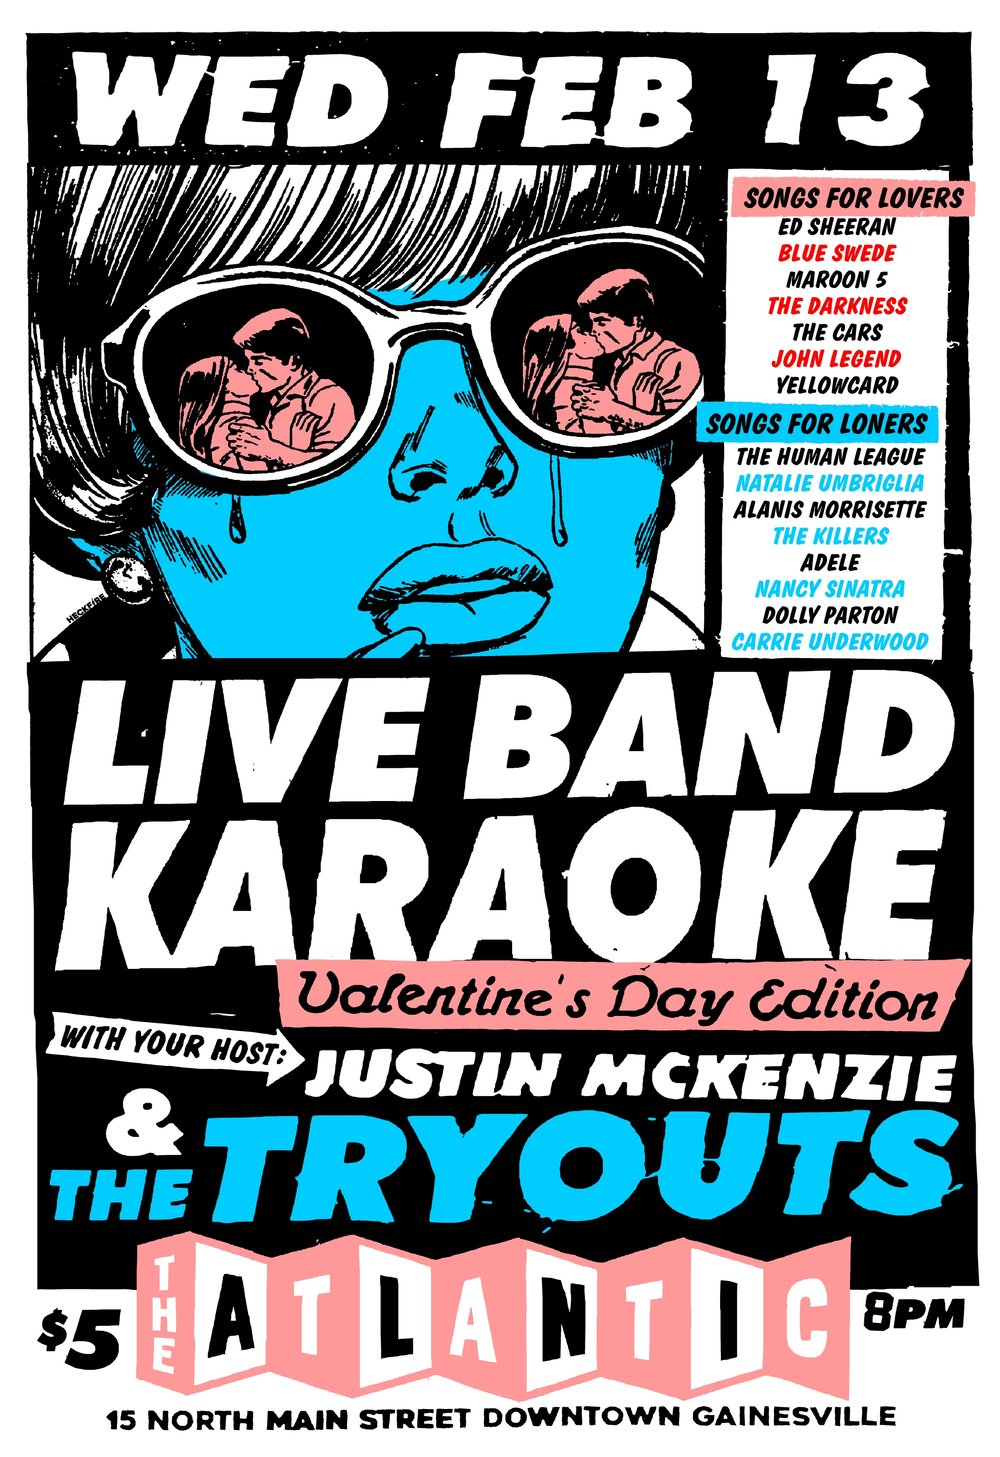 Justin McKenzie & The Tryouts are BACK for the 2019 season with MORE of that good live band karaoke you've come to know and love.   Speaking of love, it'll be the day before valentine's day! So, we're making this one about love -- or the lack thereof.   SONGS FOR LOVERS BY:  Ed Sheeran Blue Swede Maroon 5 The Darkness The Cars John Legend Yellowcard  But if you're not in love -- or worse -- heartbroken, don't worry. Channel that anger, resentment and everything else with our  SONGS FOR LONERS BY:  The Human League Natalie Umbriglia Alanis Morrisette The Killers Adele Nancy Sinatra Dolly Parton Carrie Underwood  ... and of course MANY more songs! FREE BEER for singers! Doors and signups open at 8 pm, music kicks up at 9!   $5 cover (+$3-21)